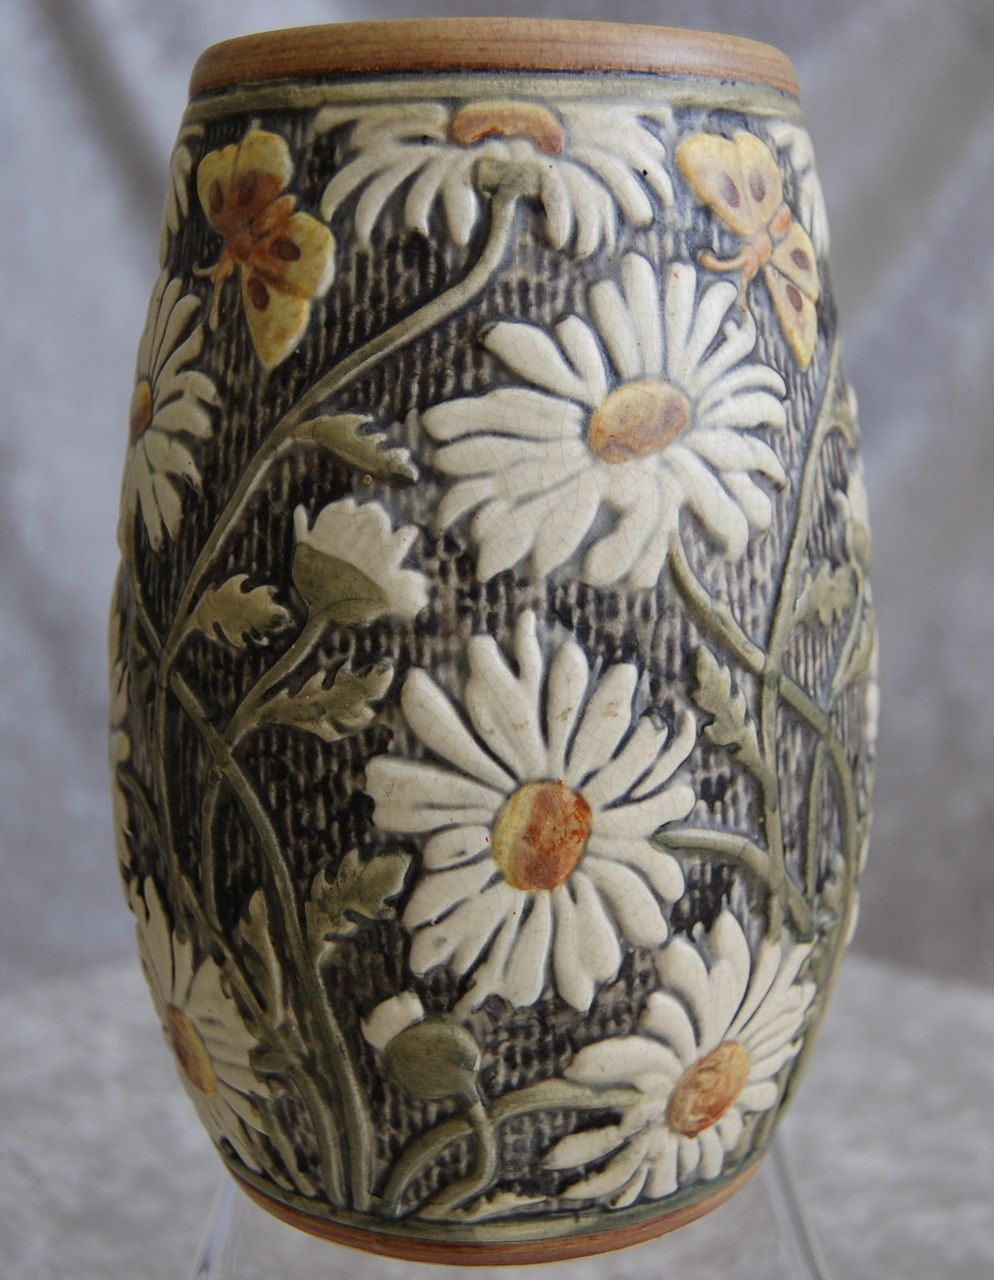 Oh My This Is Amazing I Love Daisies Weller Pottery Knifewood Vase Daisies Are A Heart Thing Pottery Art Weller Pottery Ceramic Art